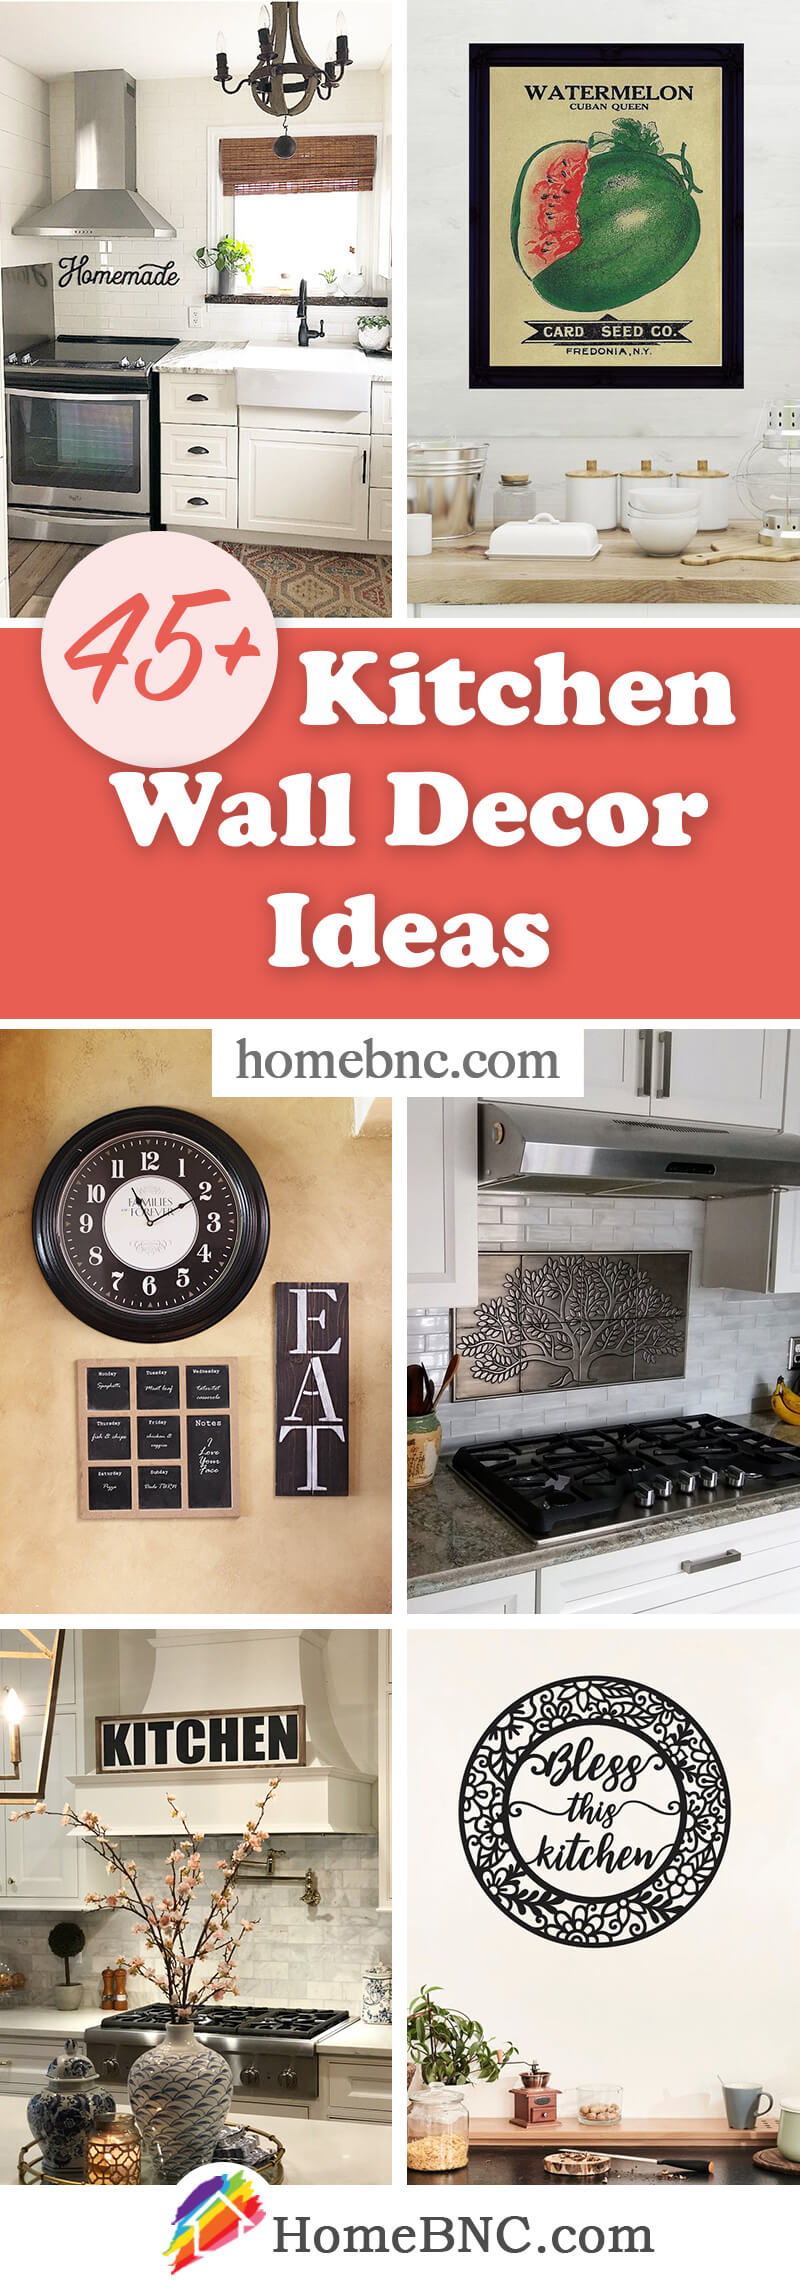 Kitchen Wall Decorations